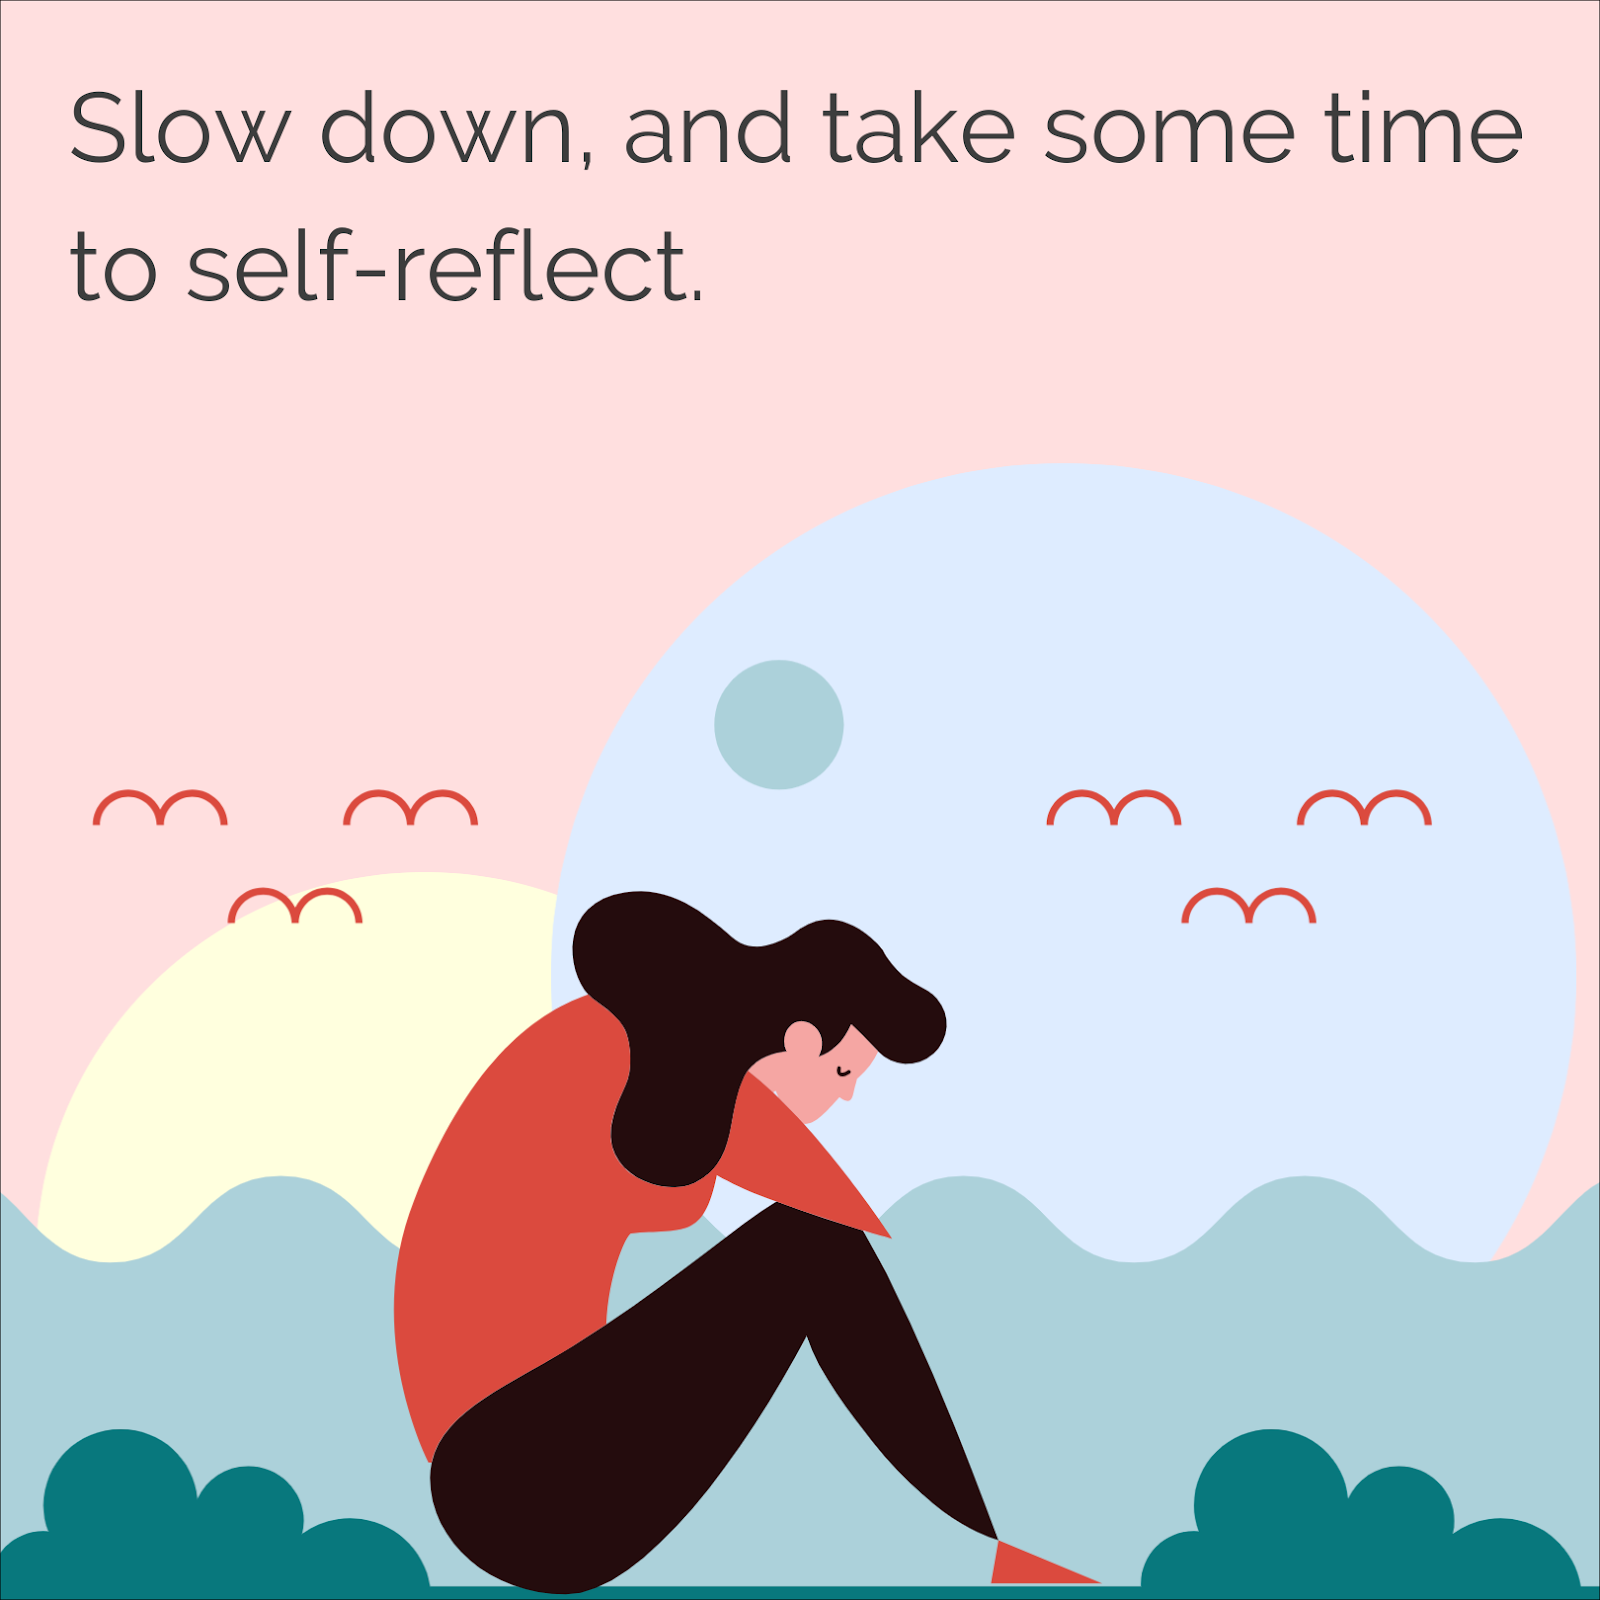 Slow down and take some time to self-reflect on your past, and get prepared for a new year.